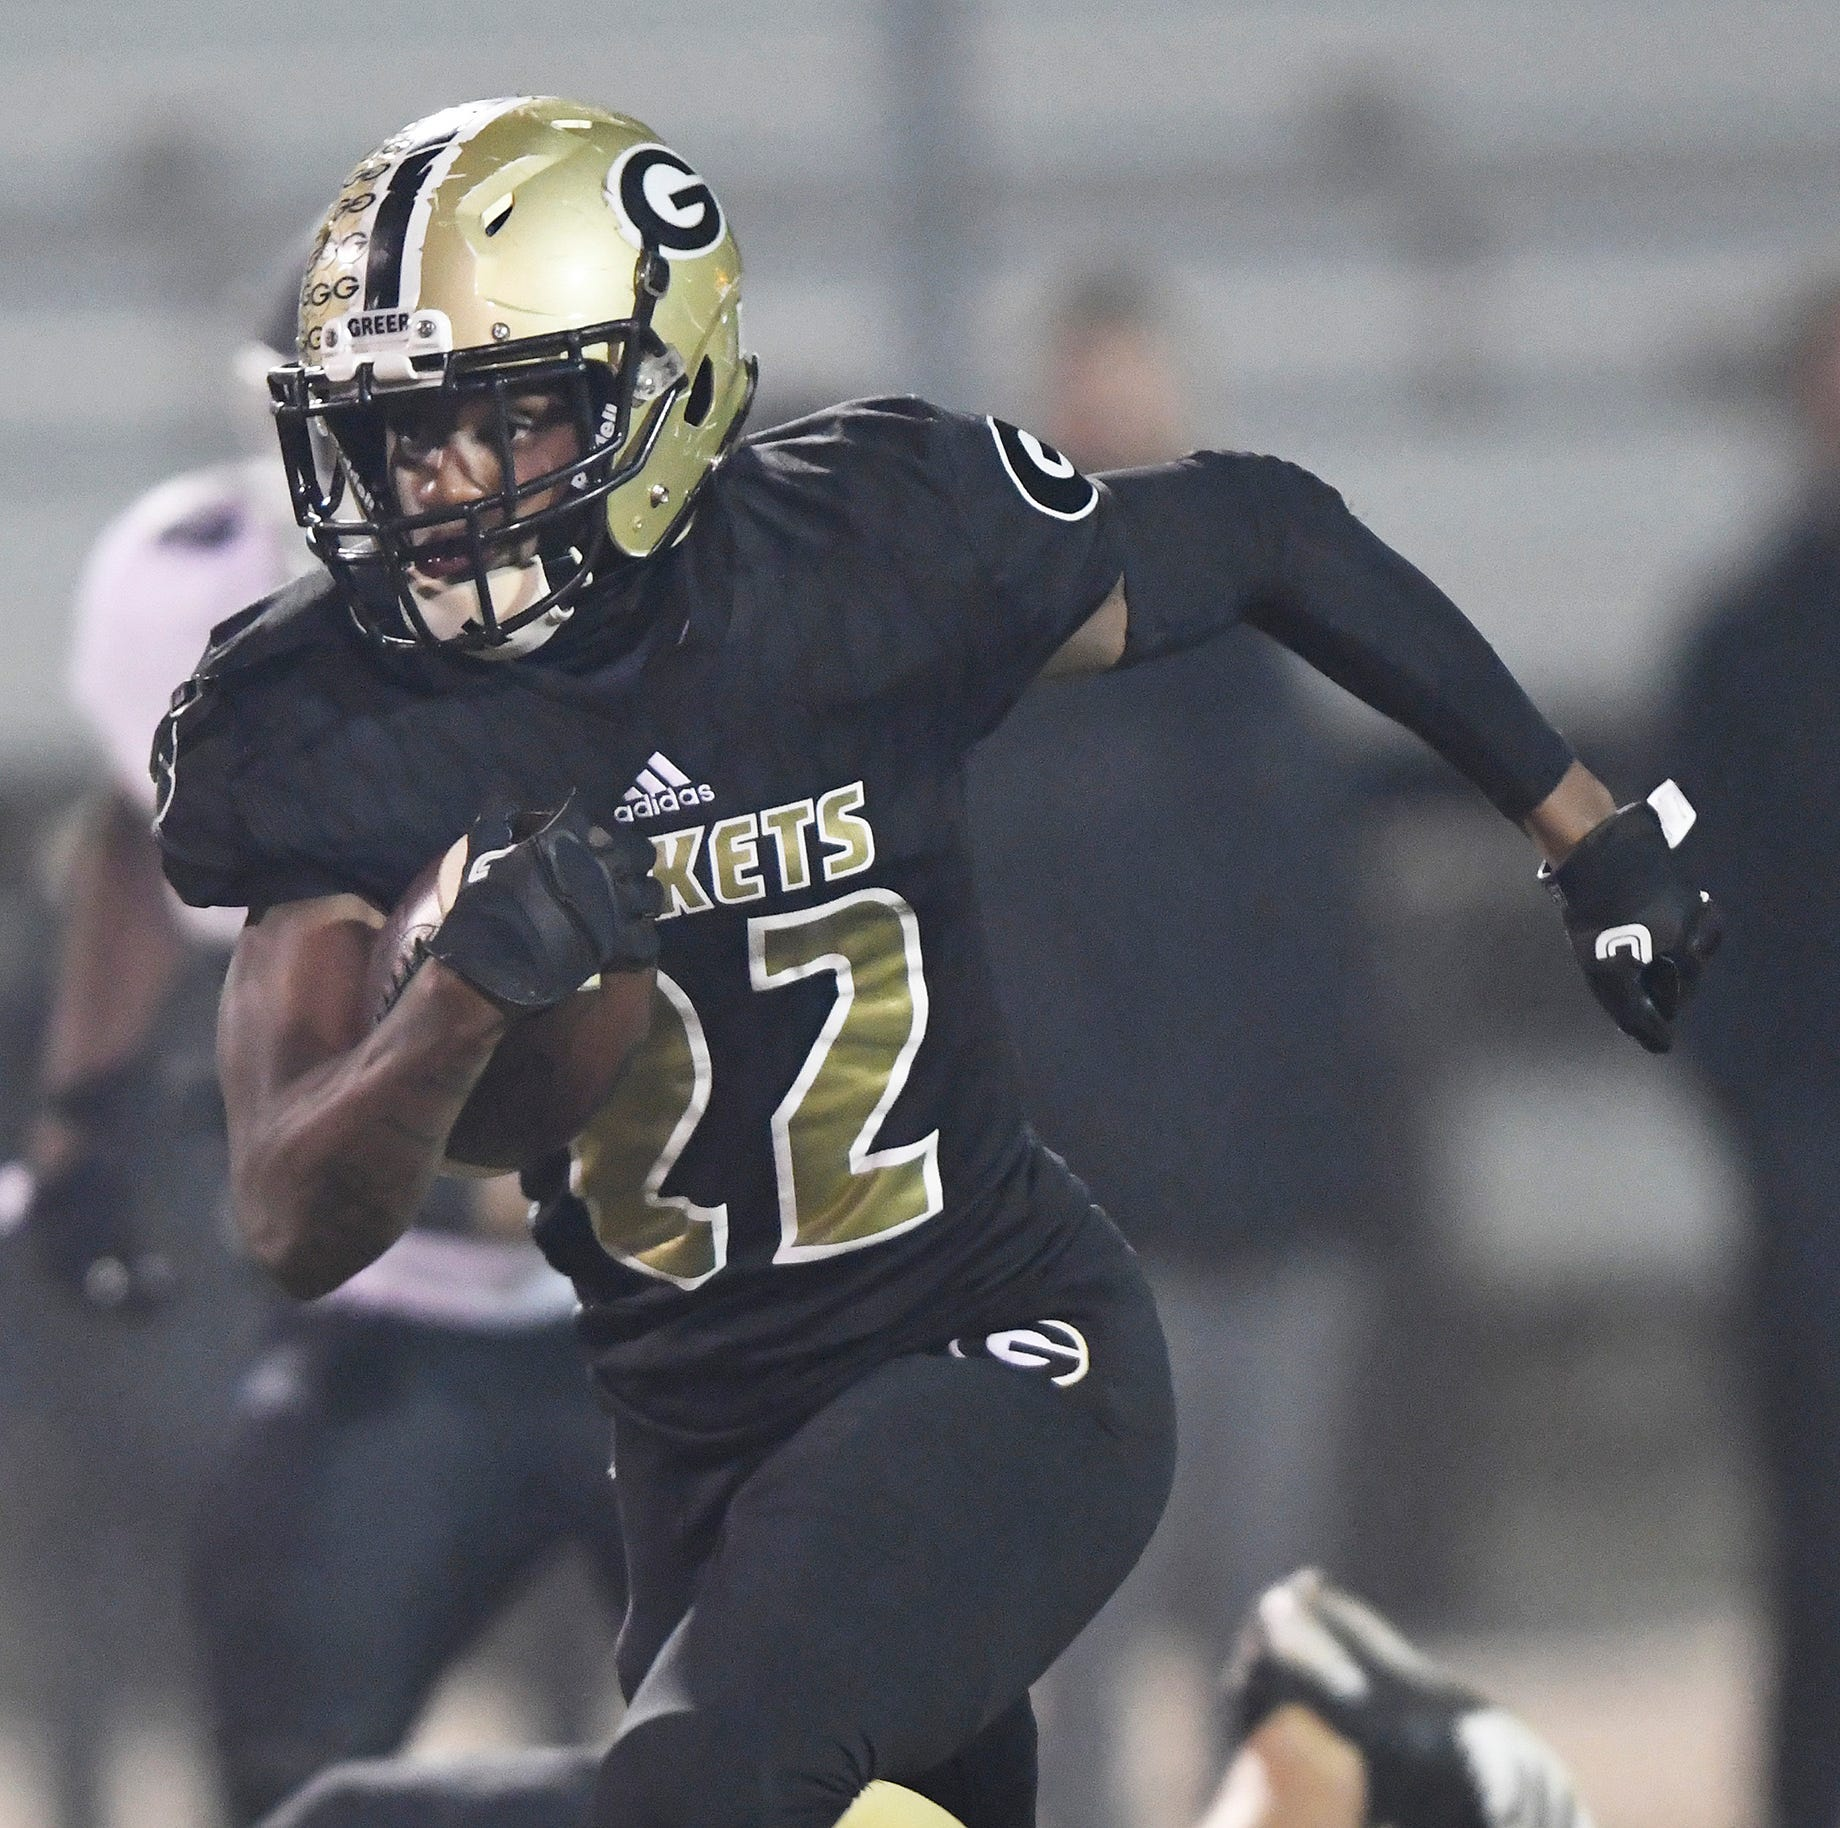 Greer's Dre Williams (22) rushes 74 yards to score on his team's first play against York in the second round of the Class AAAA playoffs  on Friday, Nov. 16, 2018, at Greer's Dooley Field.